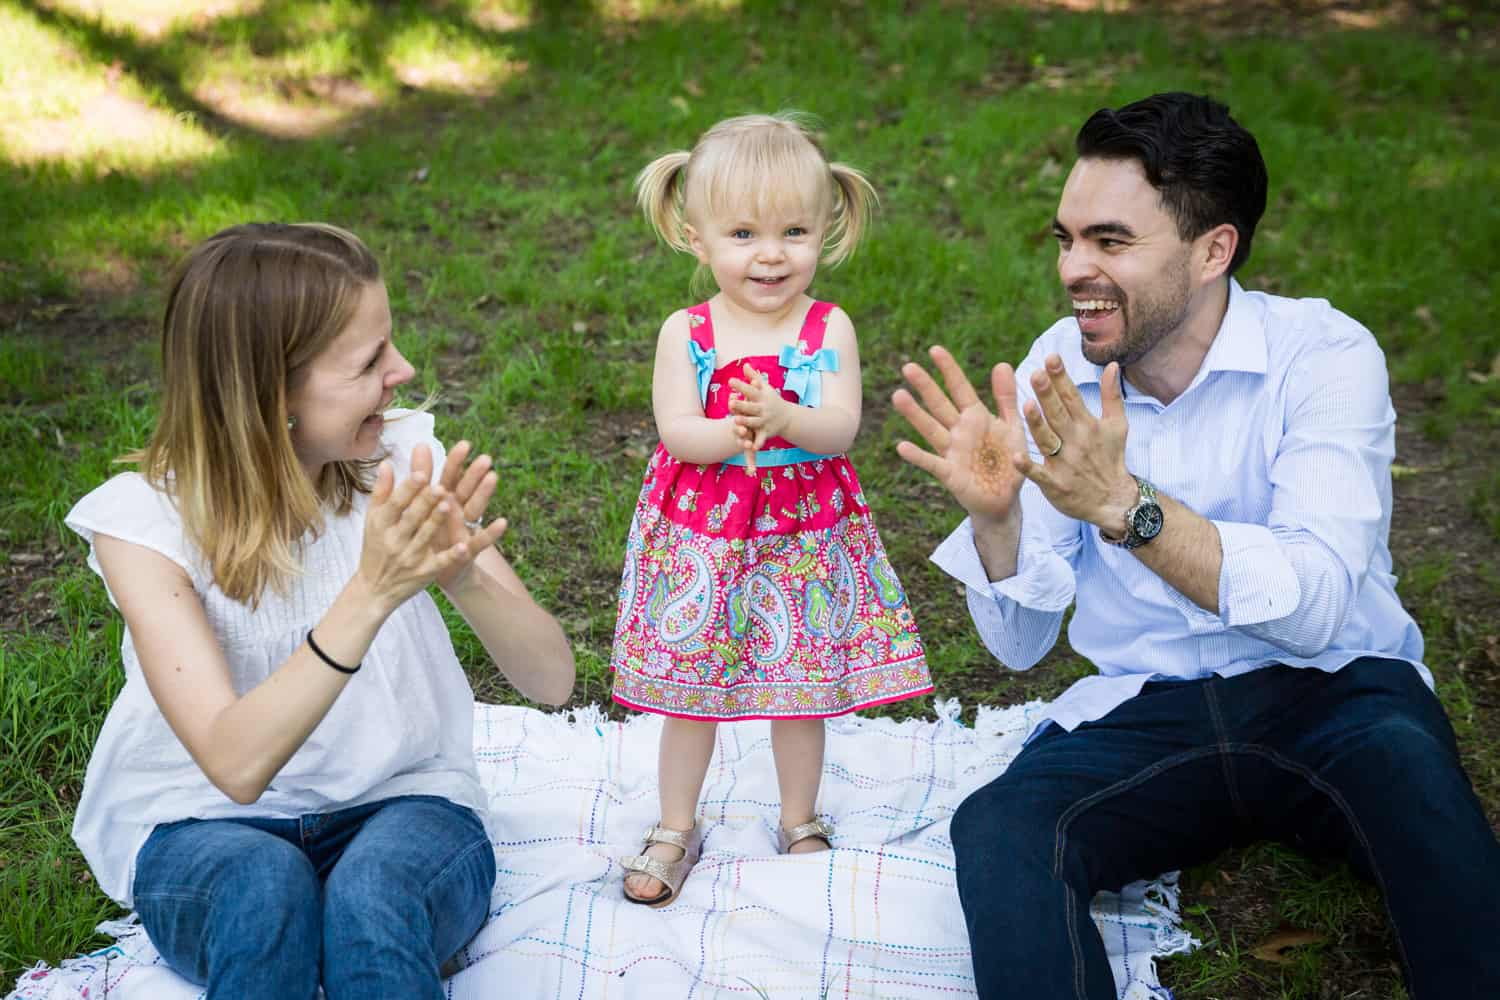 Parents clapping with little girl on blanket during a Forest Park family photo shoot